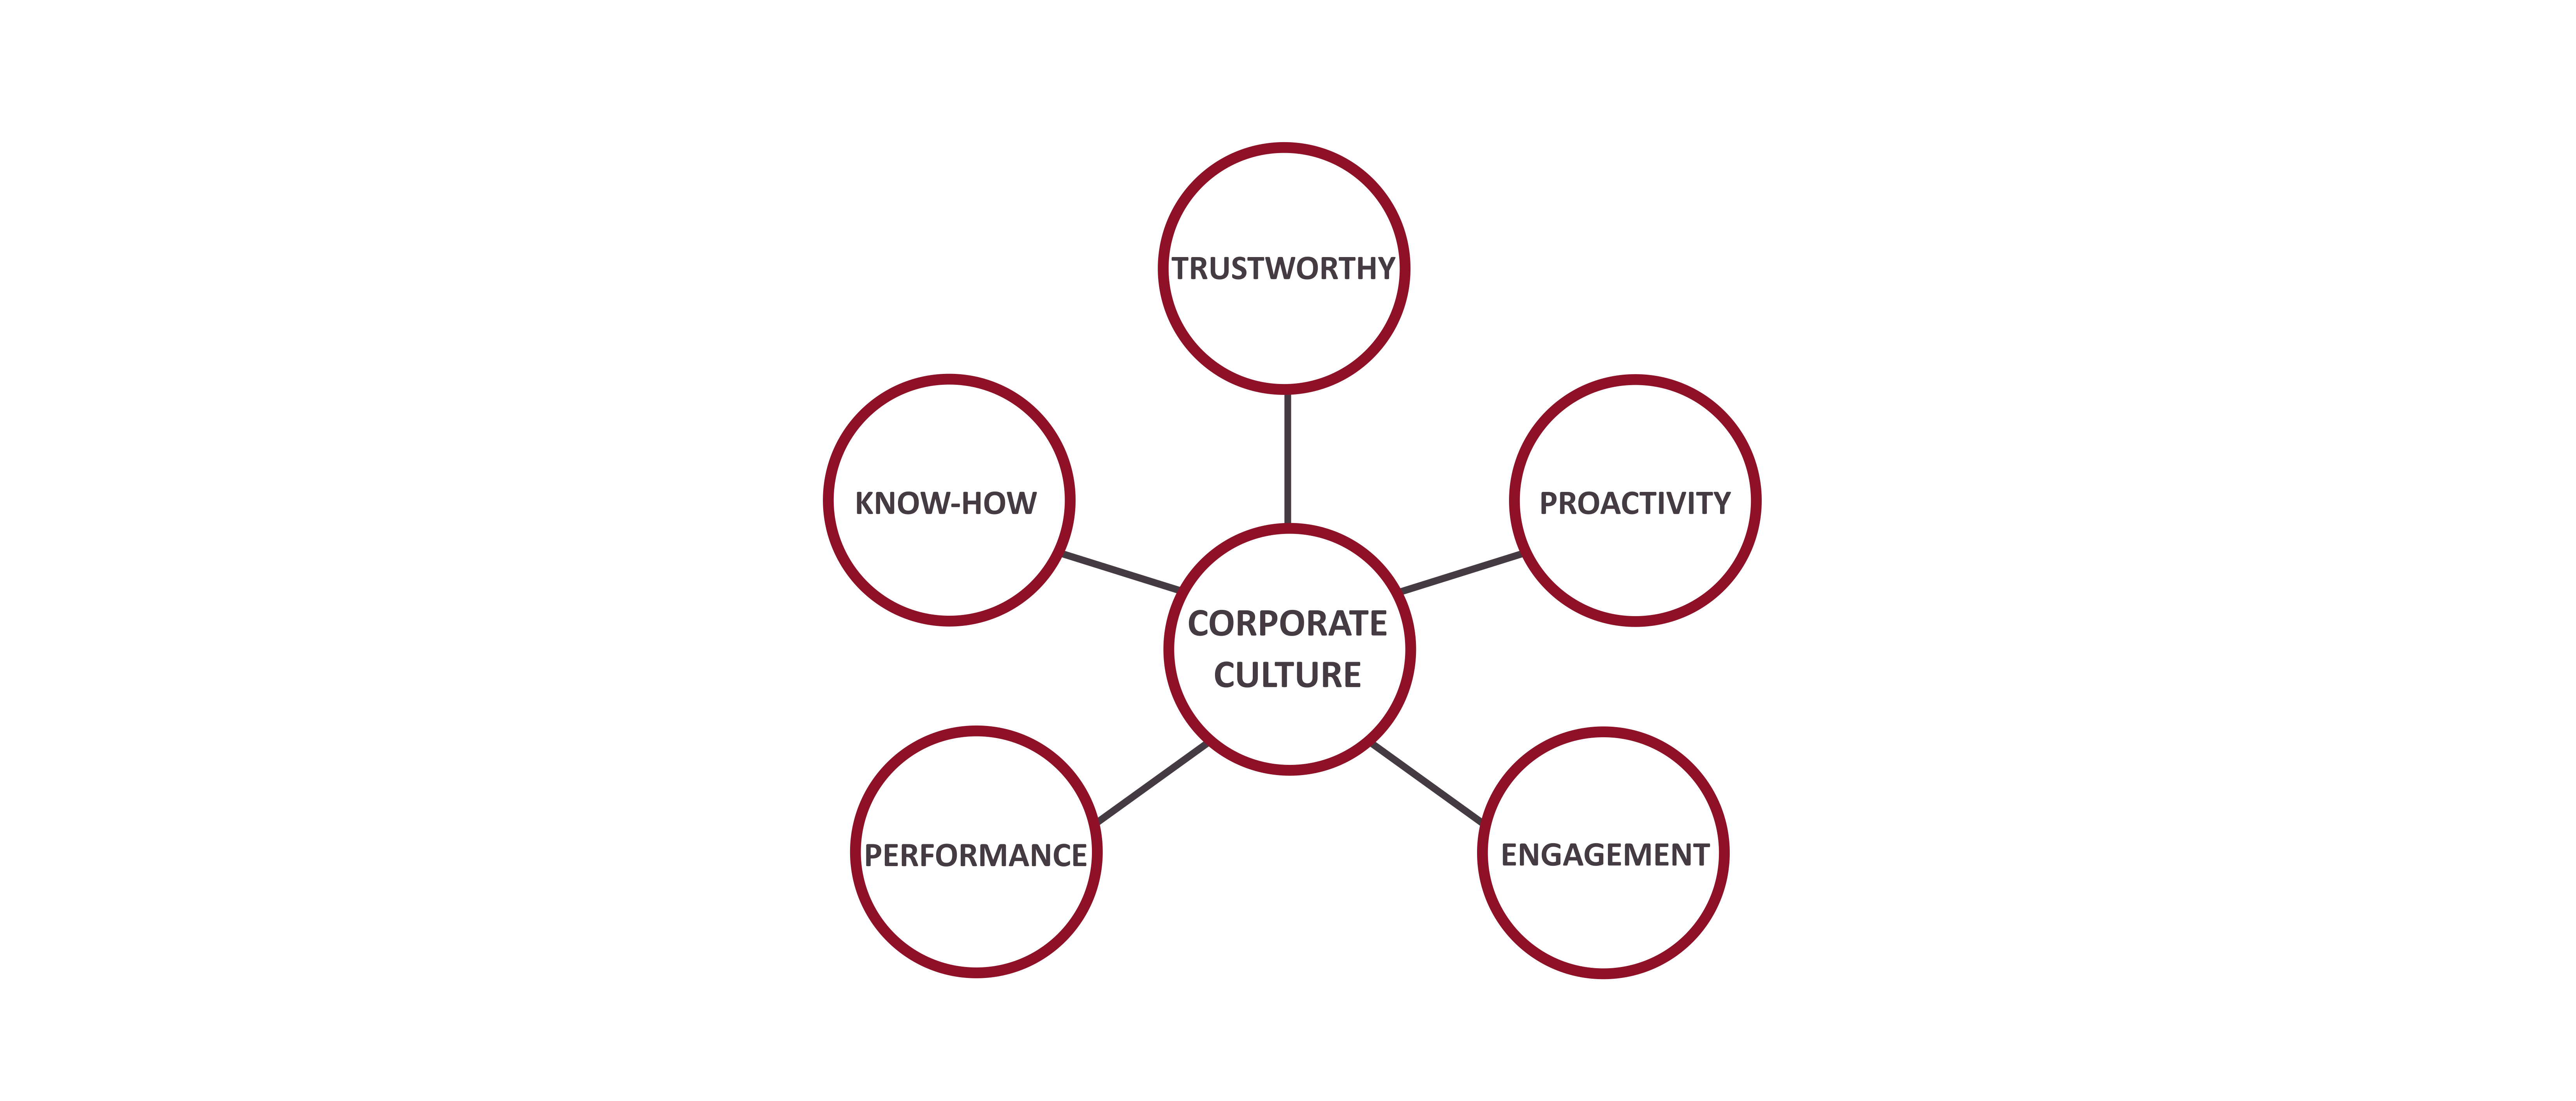 Corporate culture matters. At AXON Soft we believe, empower and encourage people